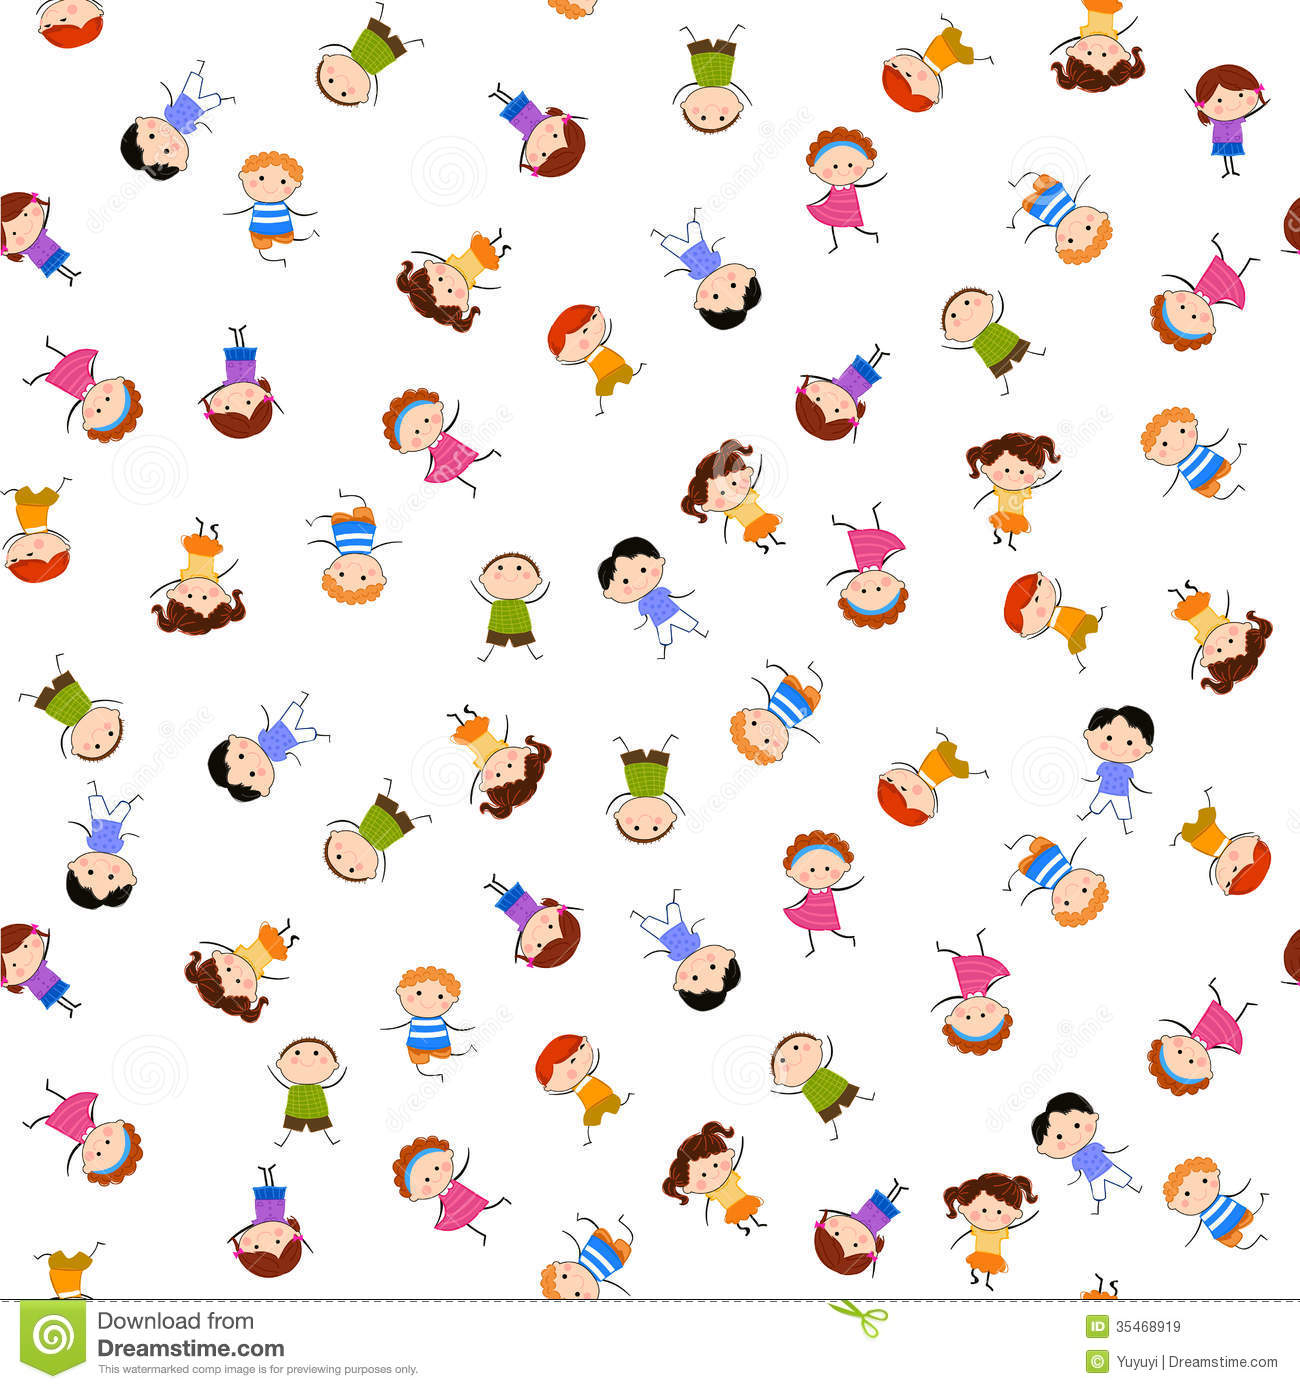 Wallpapers 3d Hello Kitty Gratis Kids Seamless Pattern Background Royalty Free Stock Images